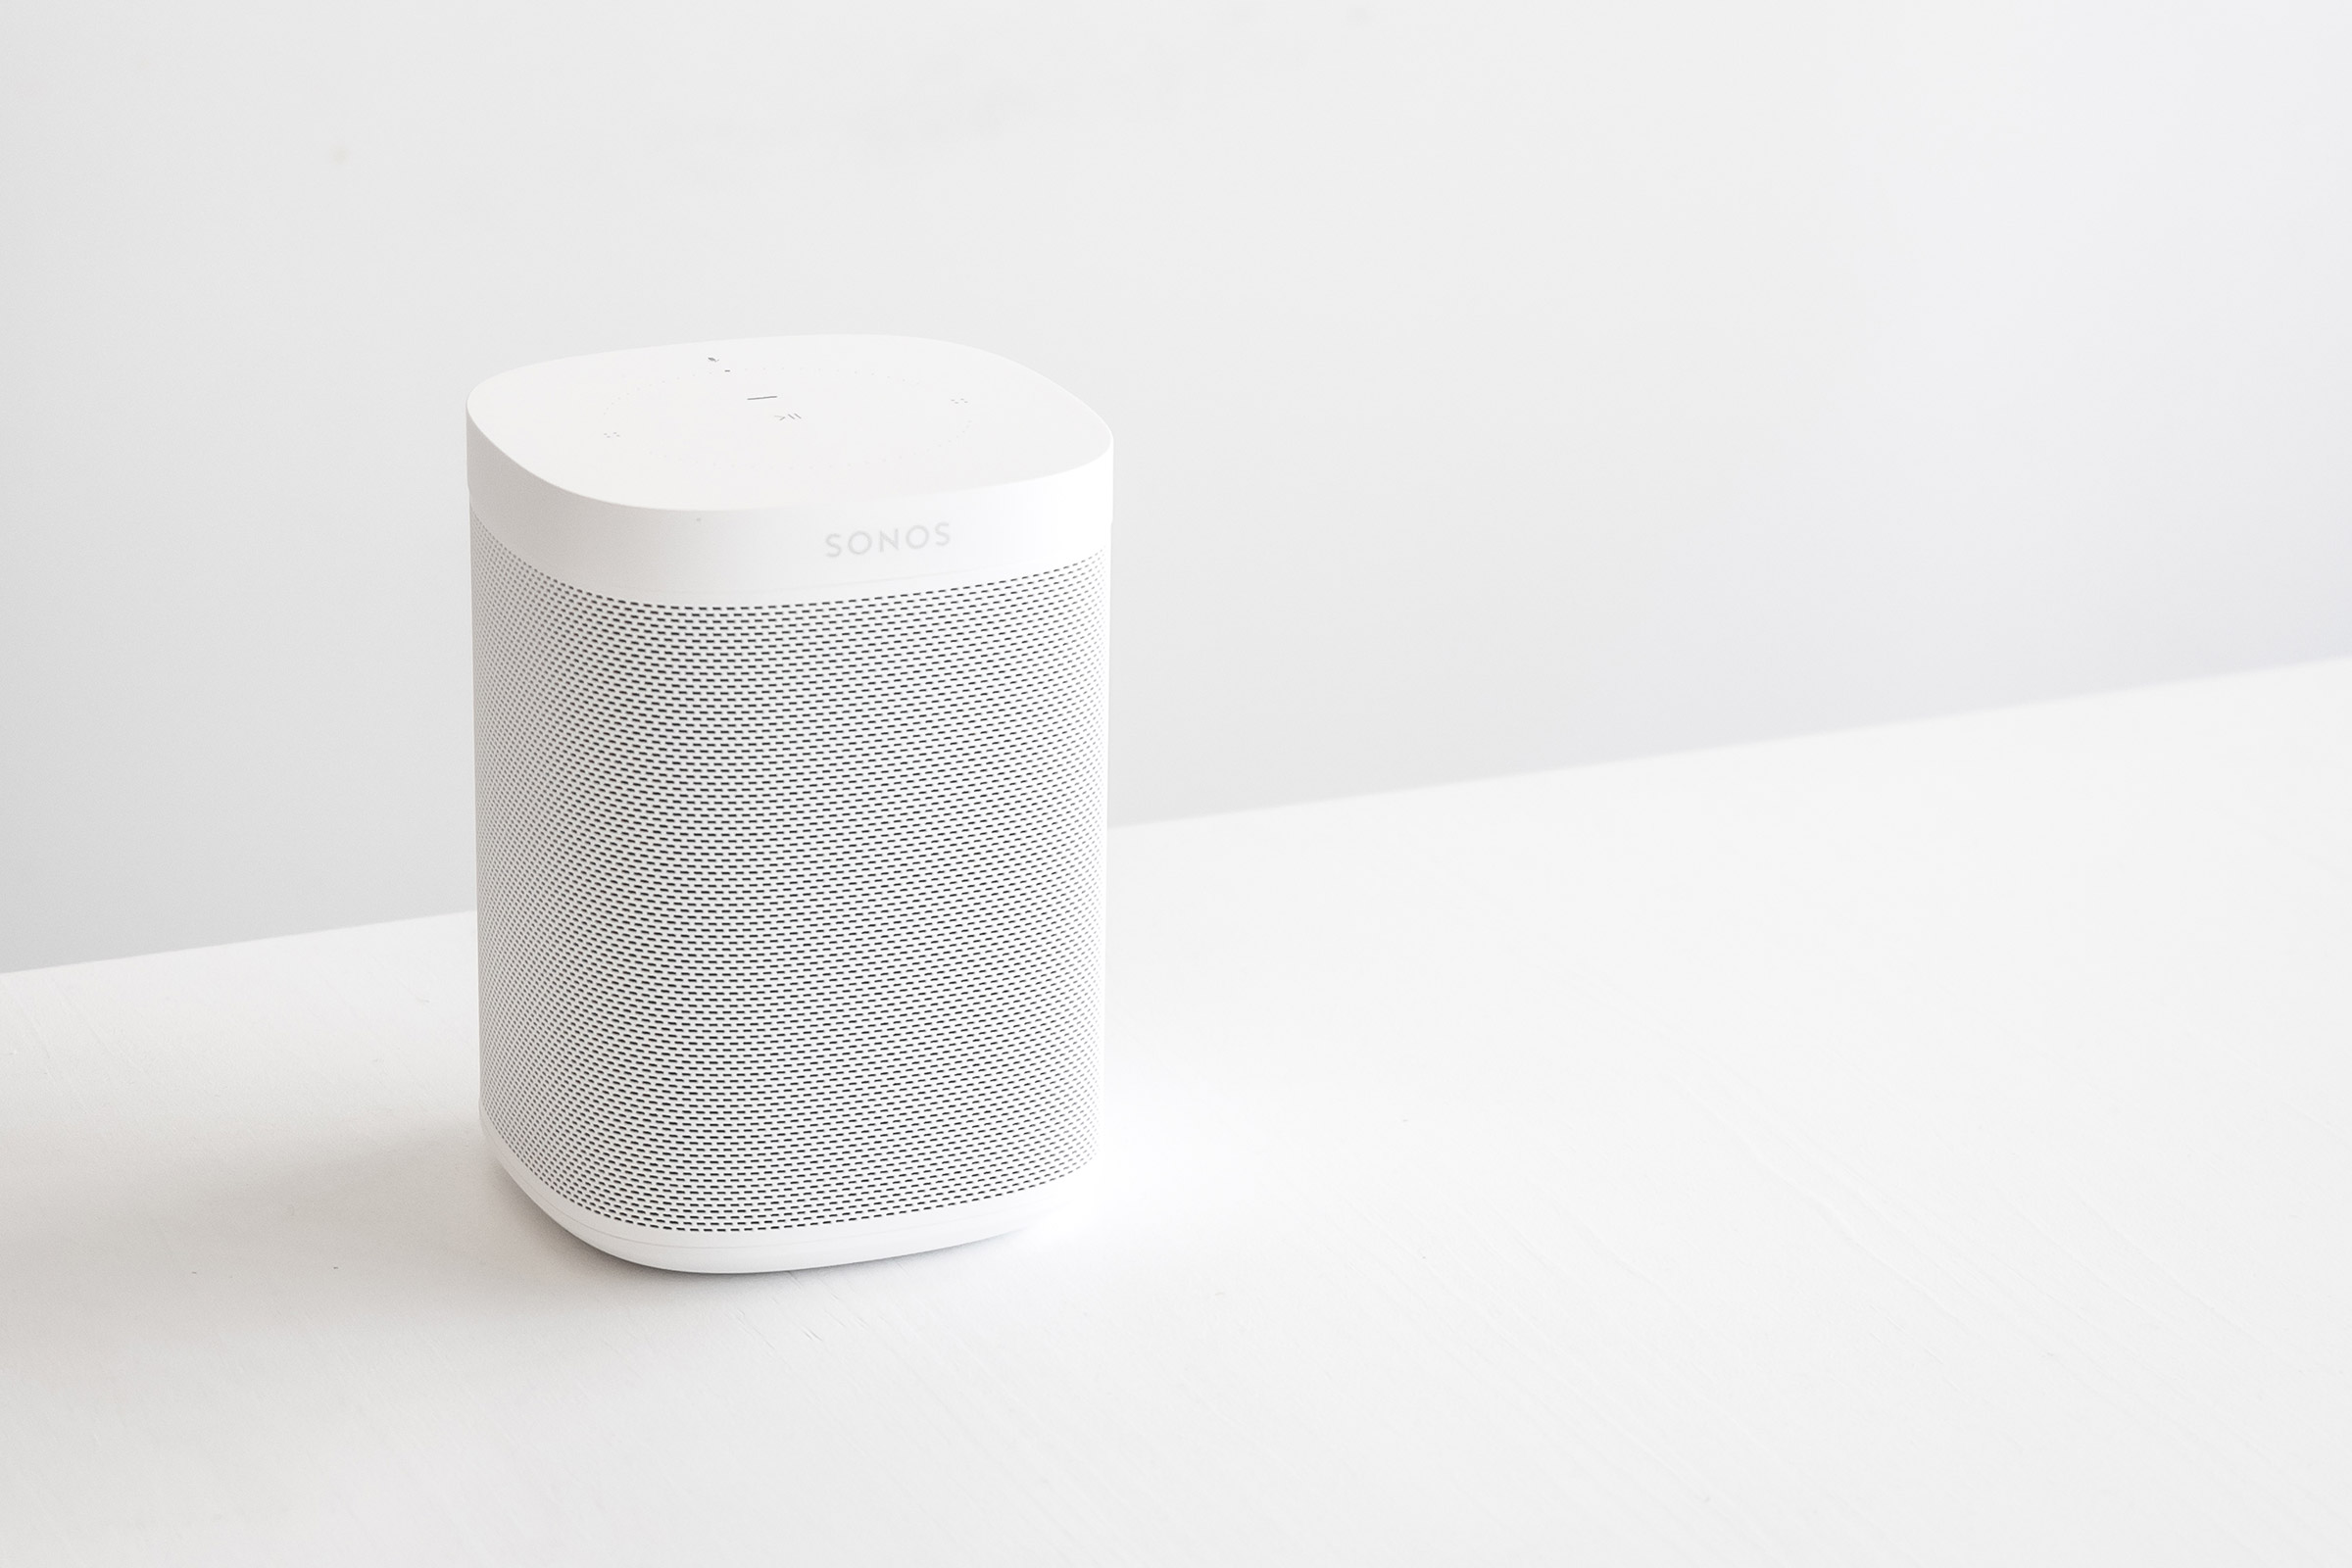 Tech Gift Guide - Sonos ONE